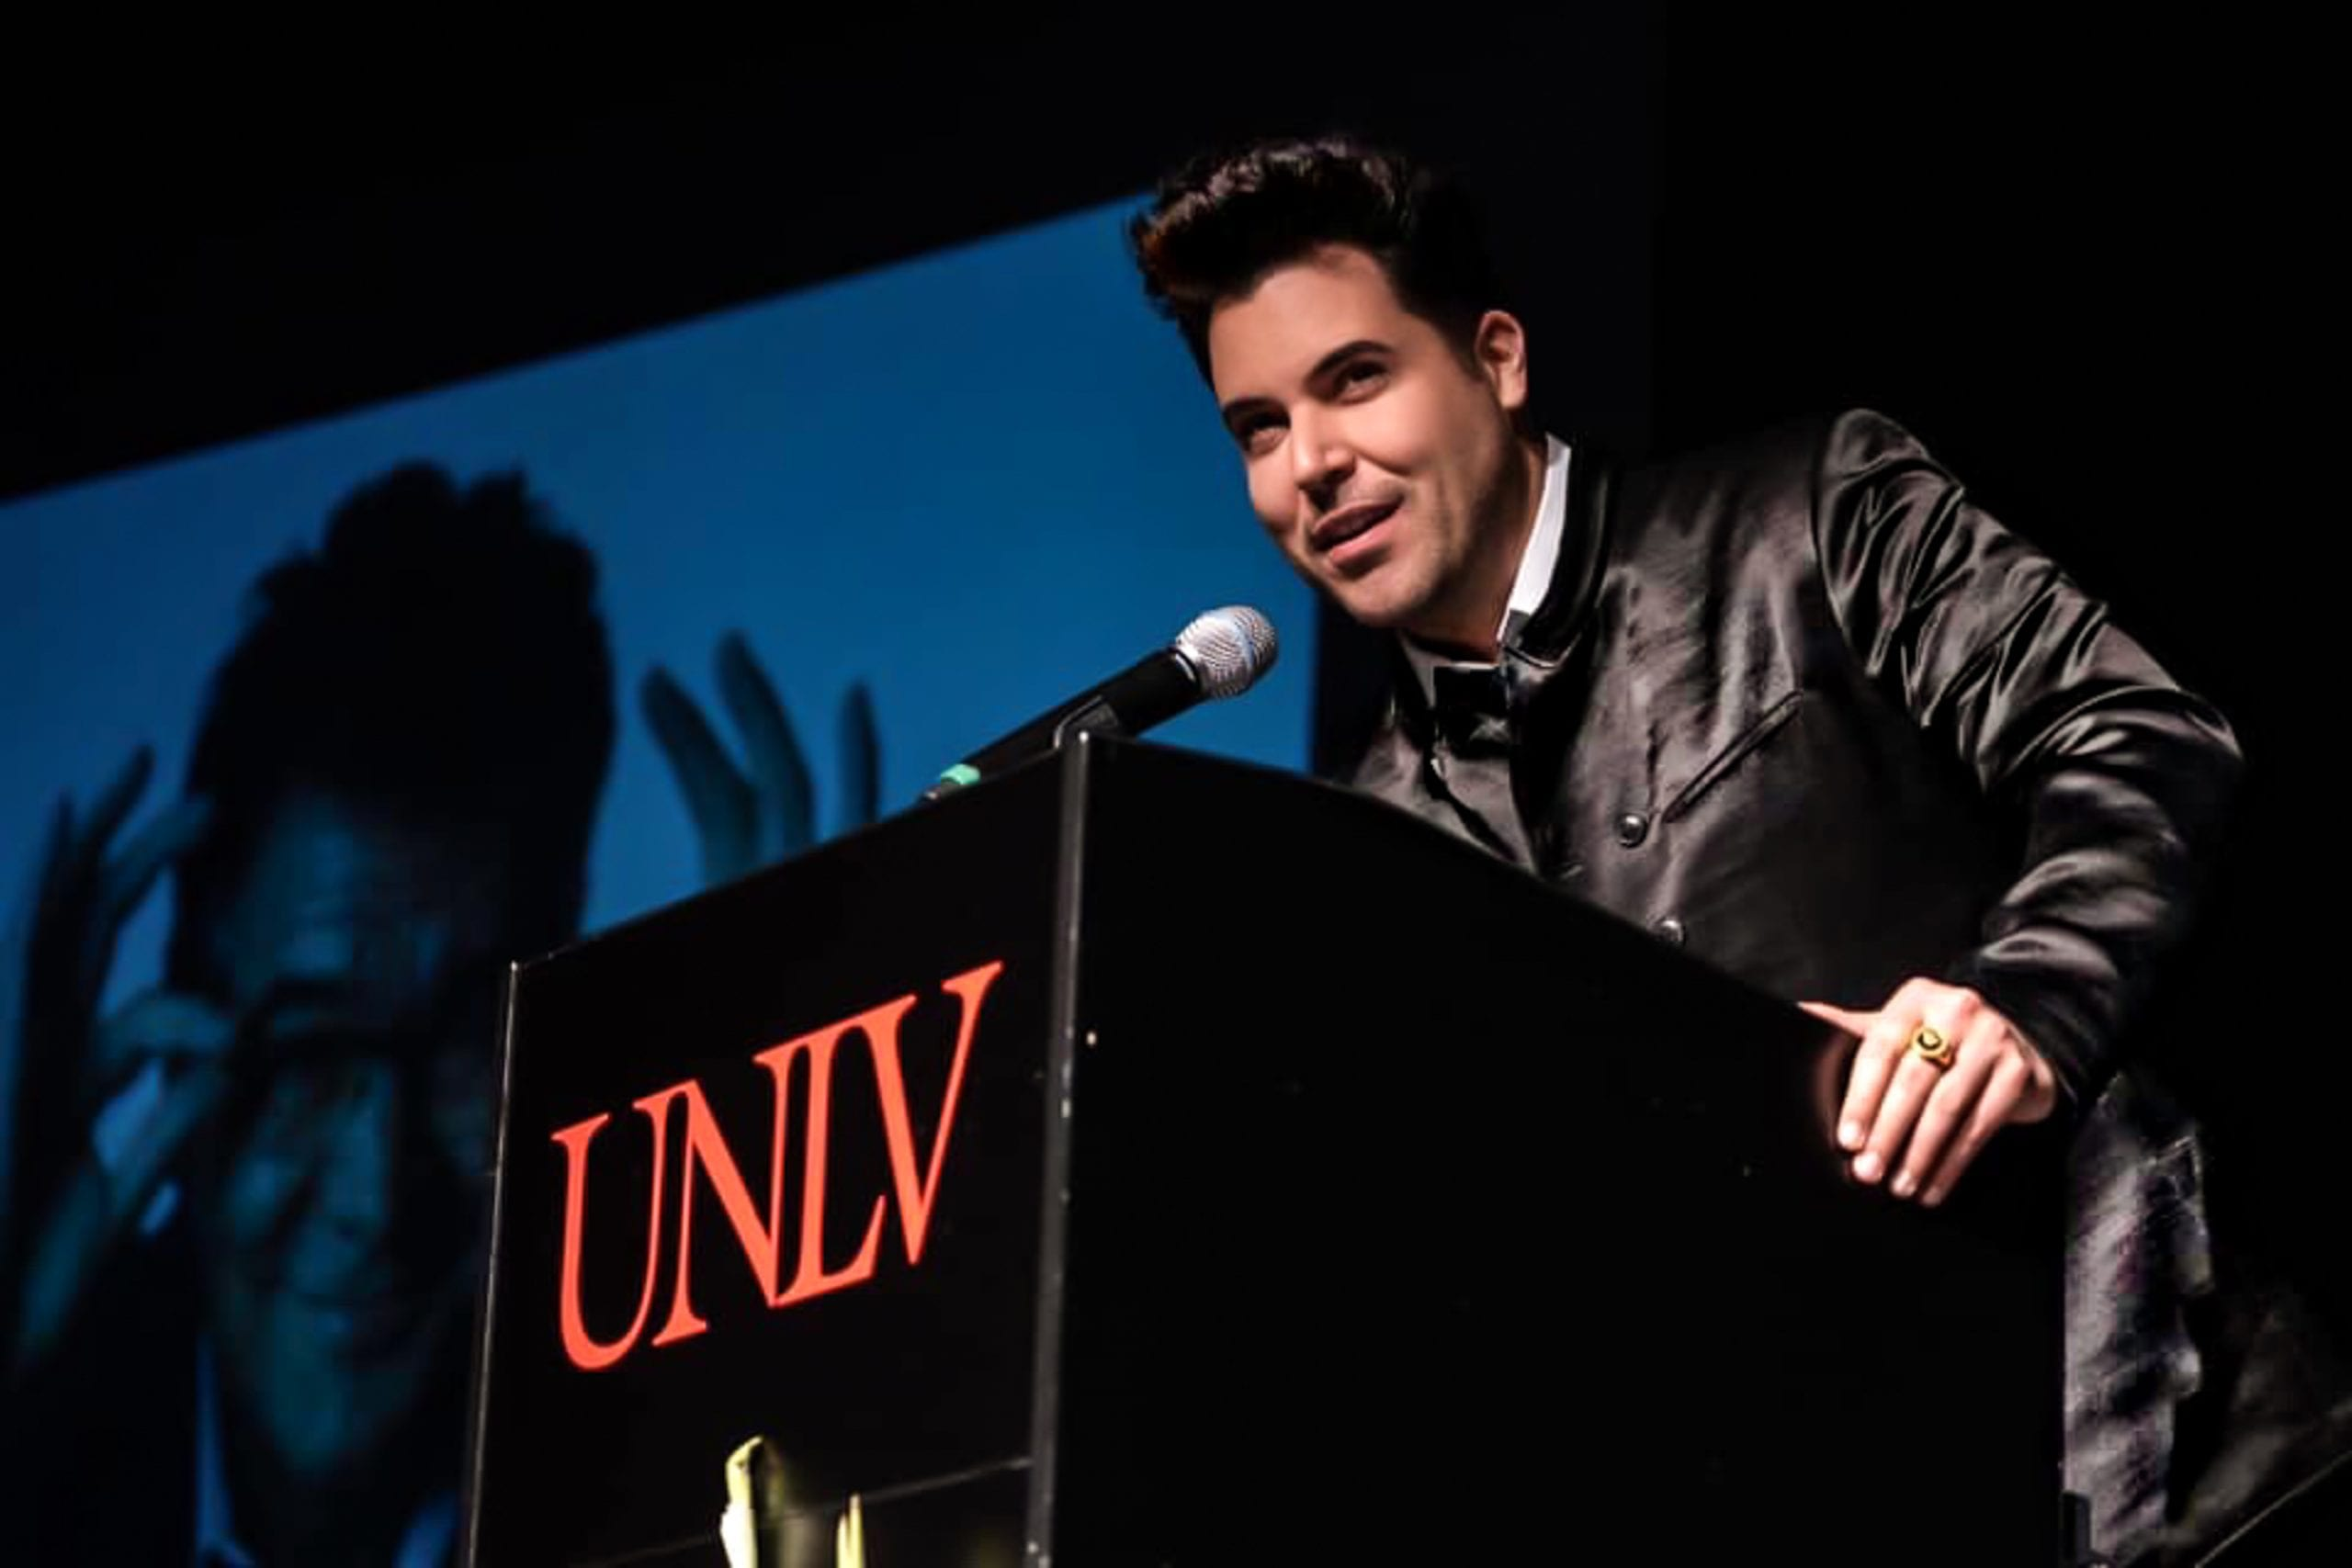 MORENO IS INDUCTED INTO THE UNLV HALL OF FAME